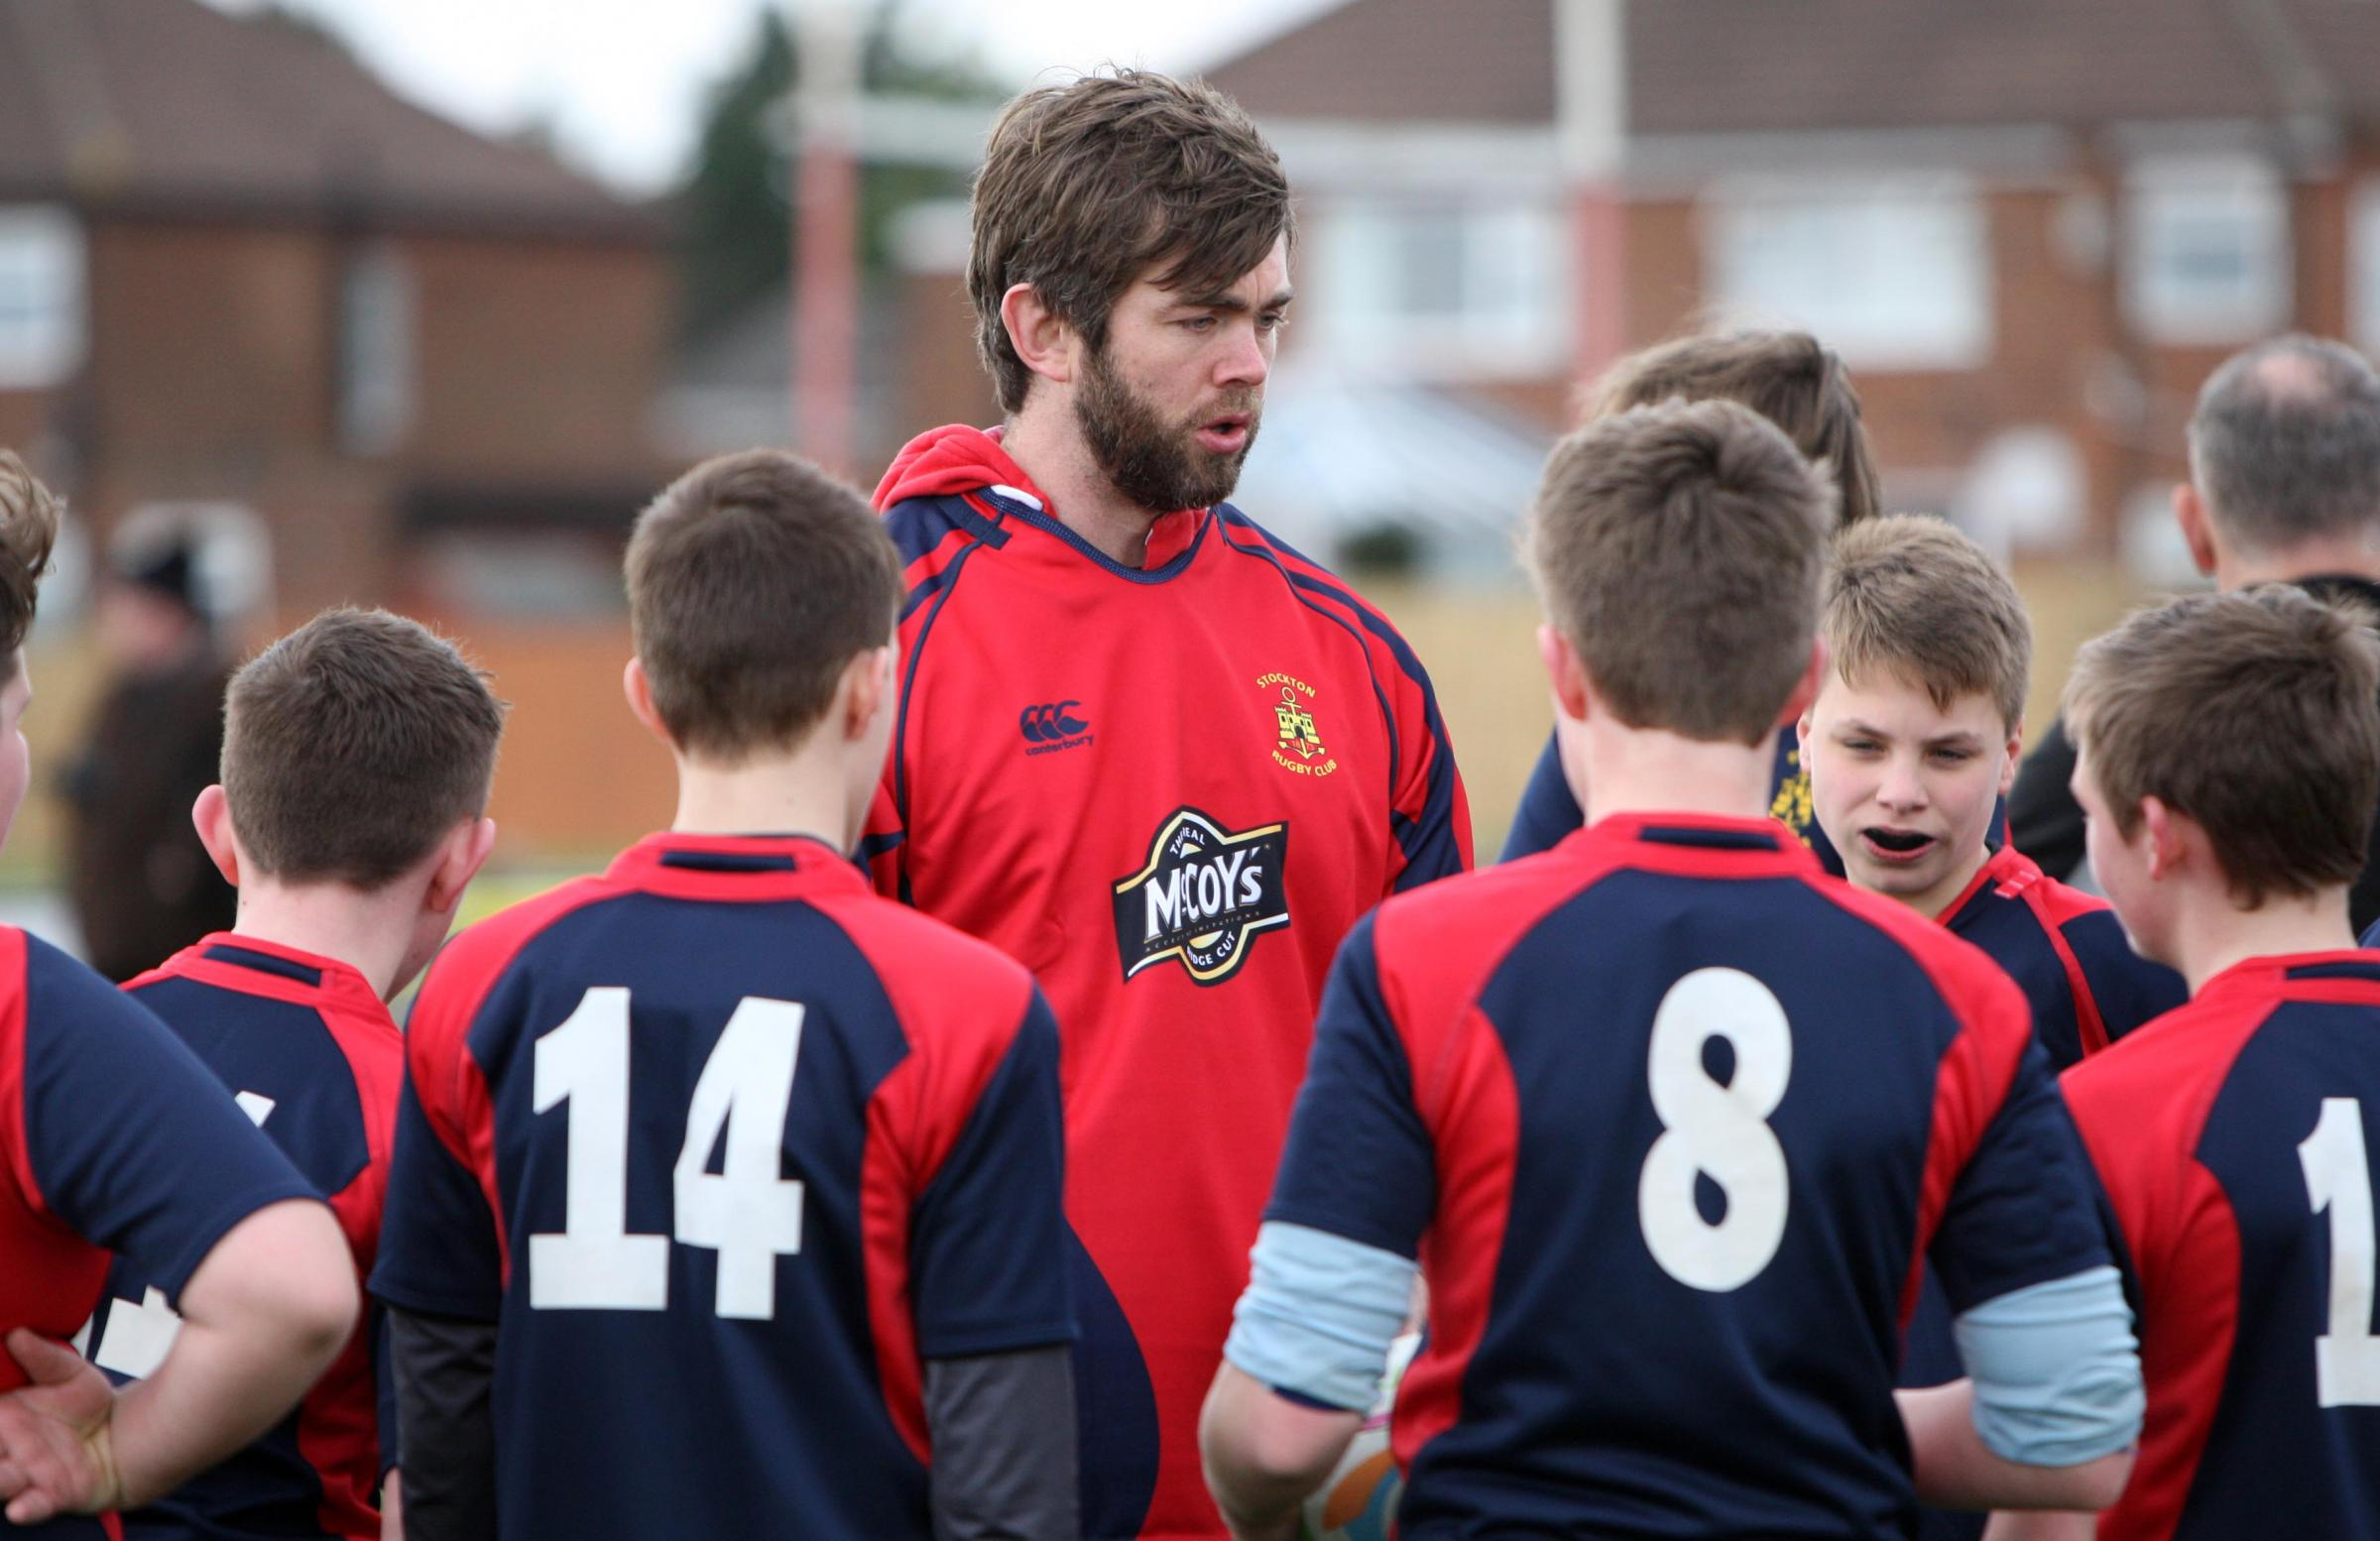 British and Irish Lions rugby union star Geoff Parling goes back to his roots by visiting Stockton Rugby Club where he started his illustrious career by training some of the youth teams. Pictures: Tom Banks